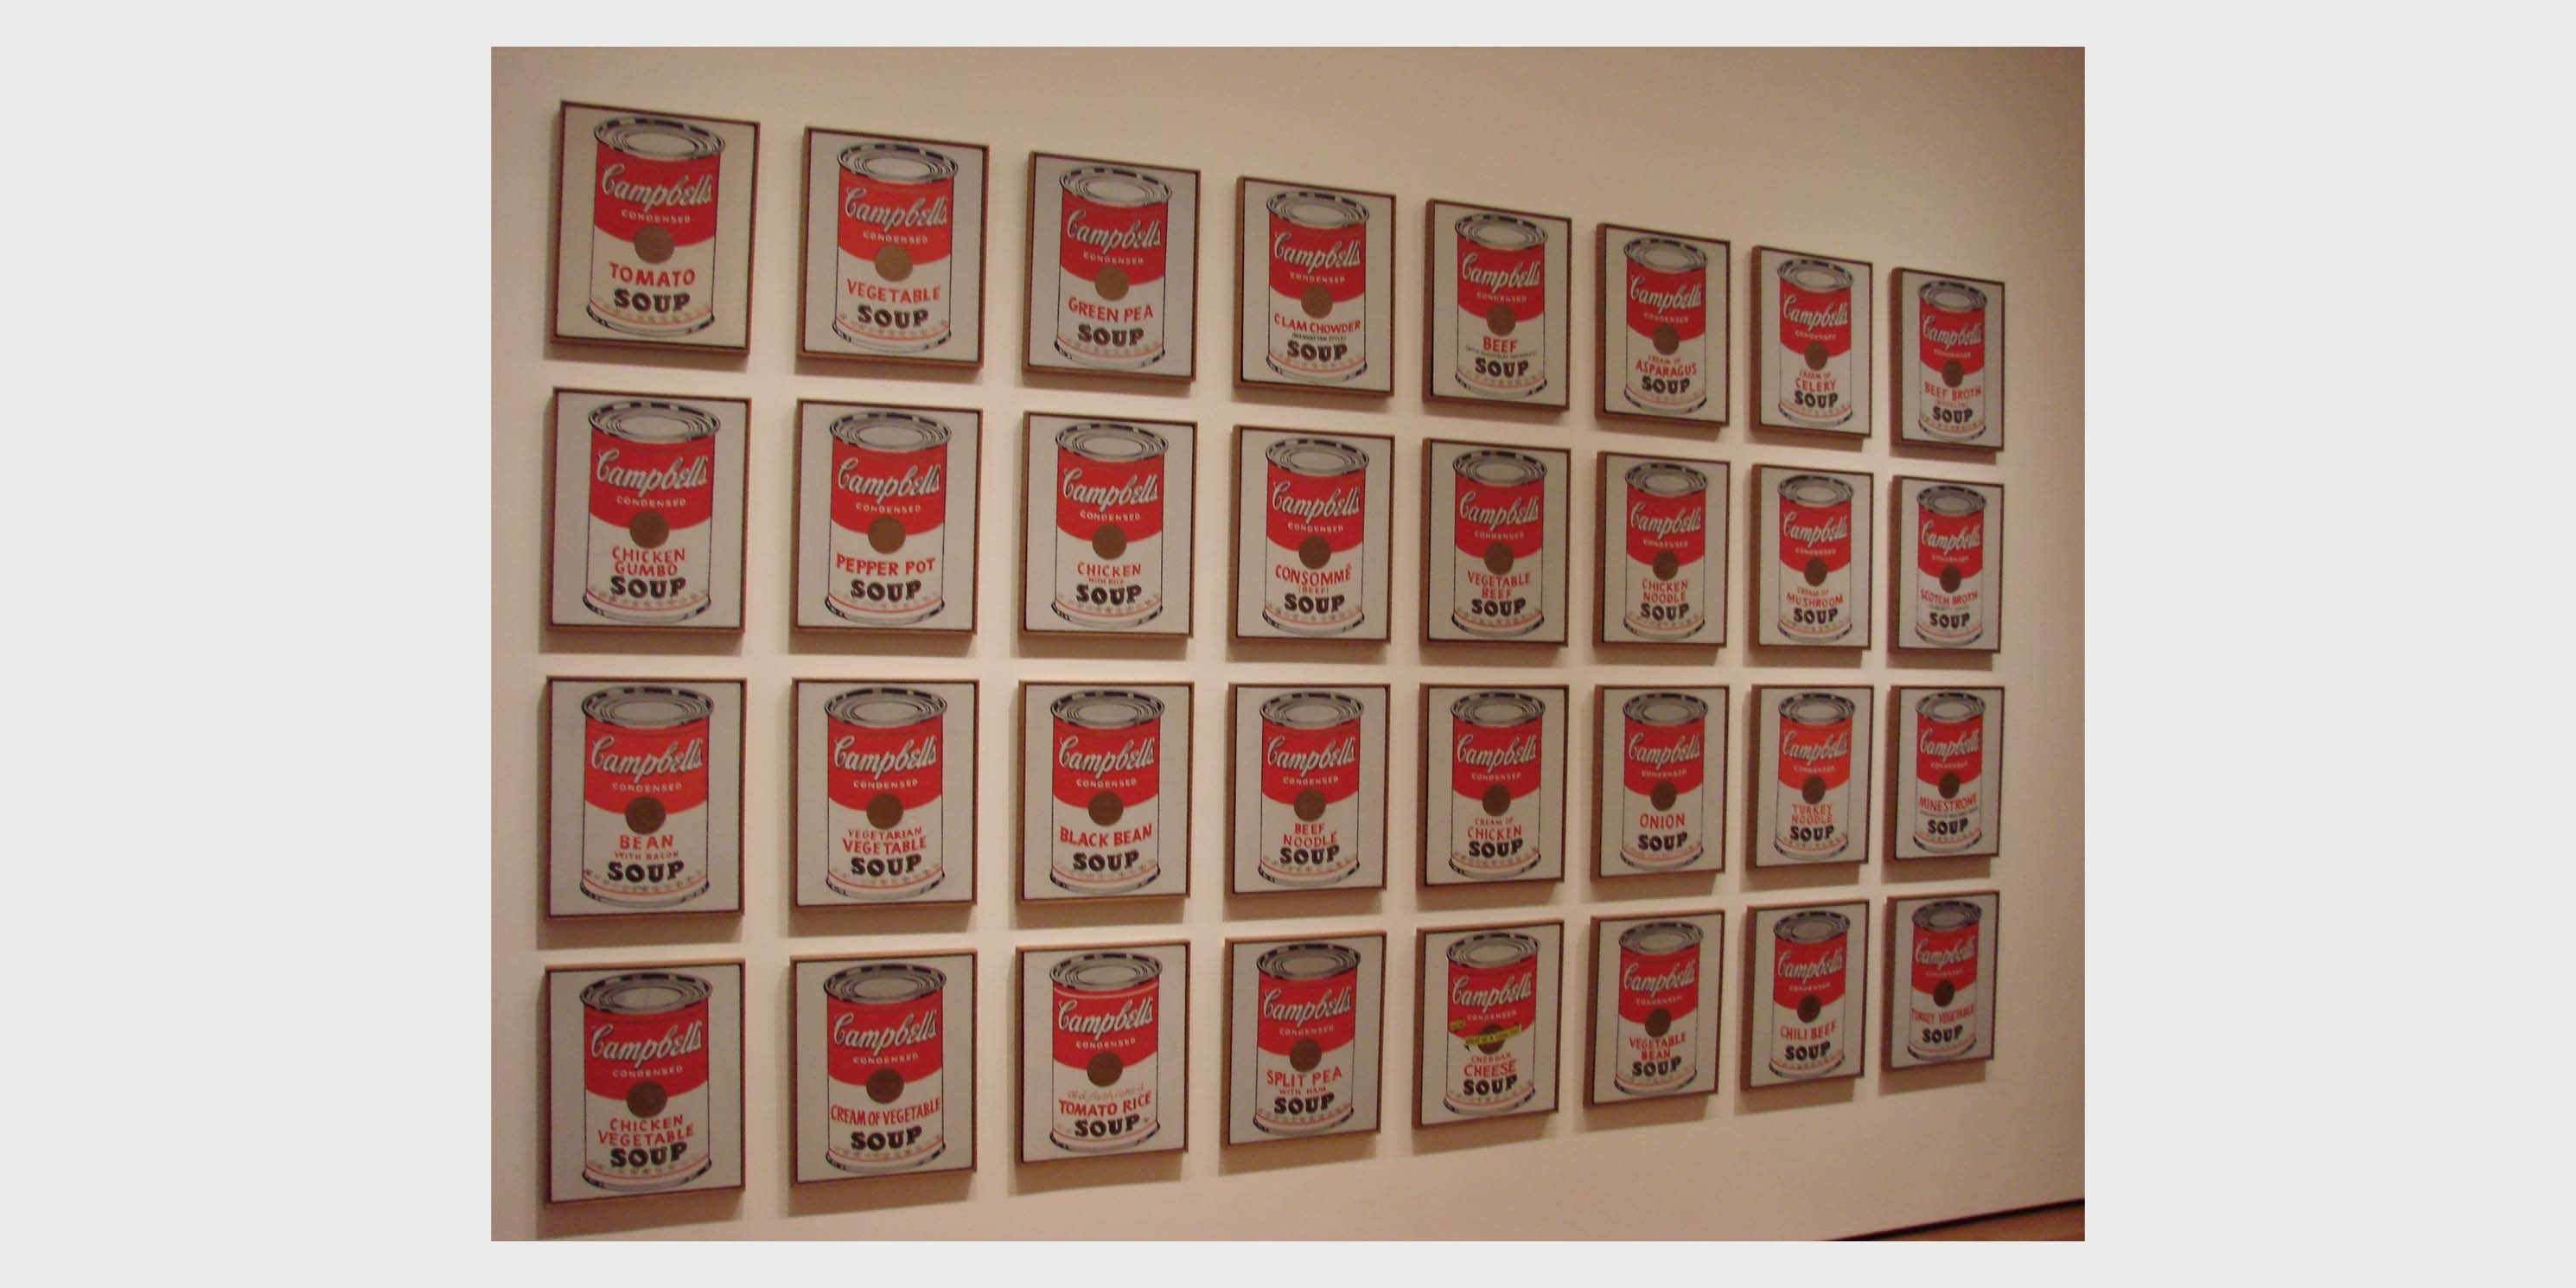 display of Andy Warhol's soup can paintings at the Museum of Modern Art